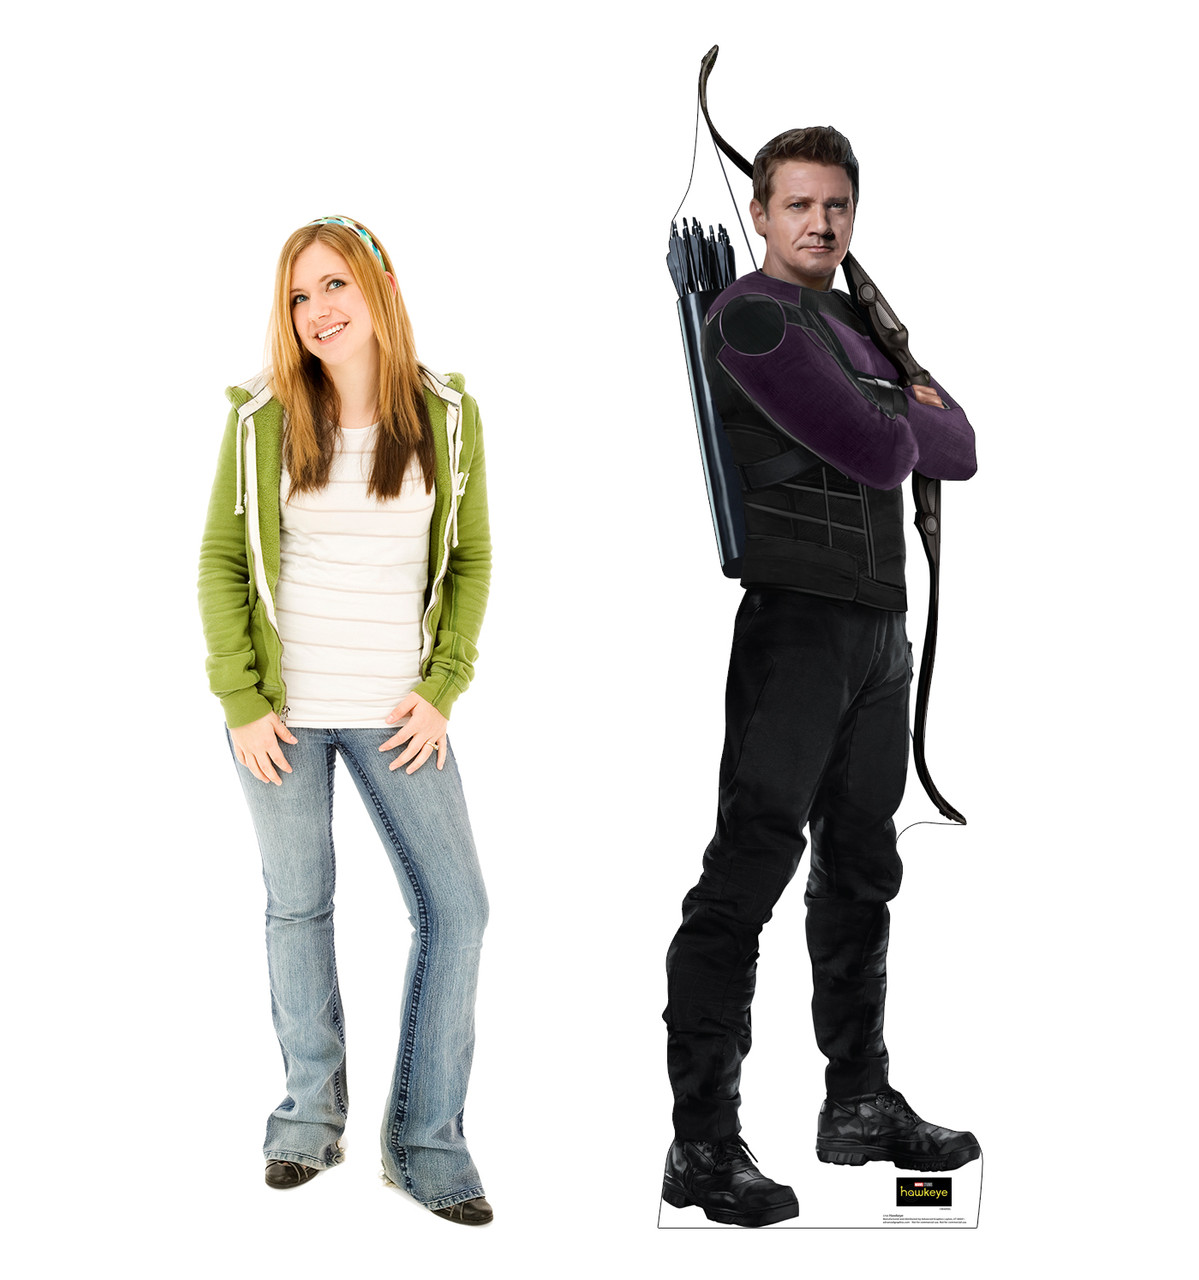 Life-size cardboard standee of Hawkeye from the Disney+ Hawkeye TV Series with model.